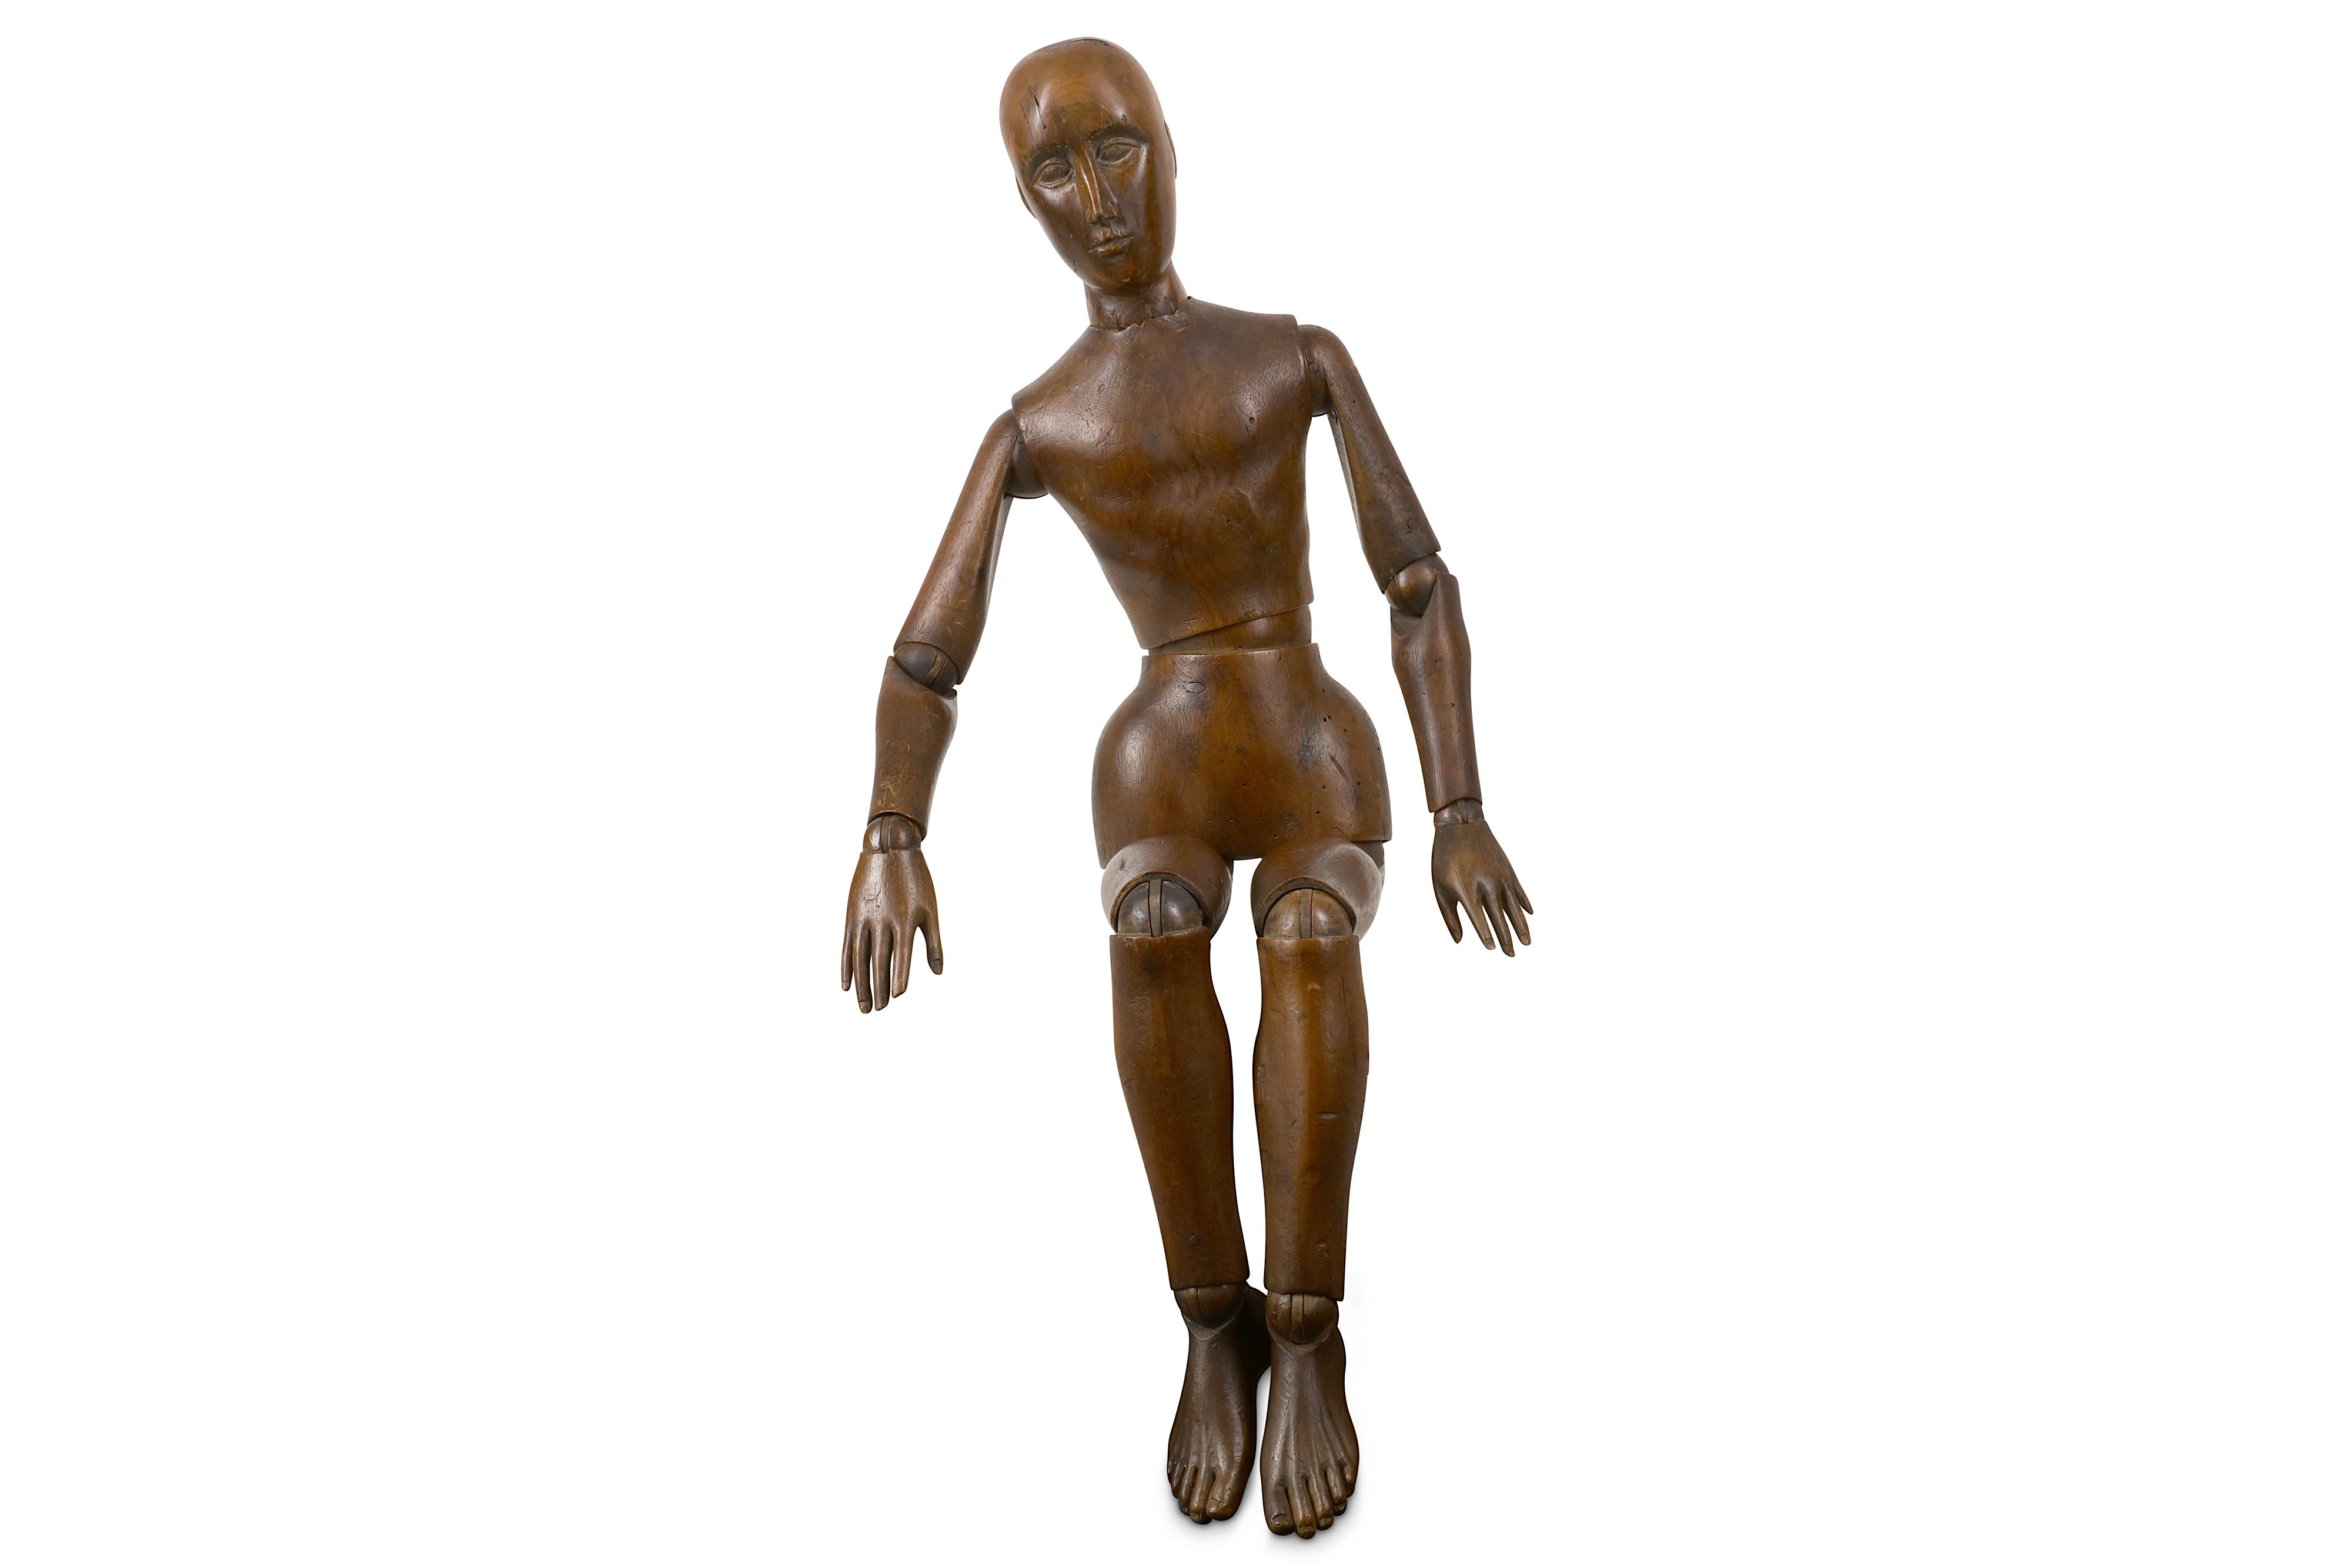 Lot 28 - AN EARLY 20TH CENTURY CARVED AND STAINED WOOD LAY FIGURE OR ARTIST'S MANNEQUIN